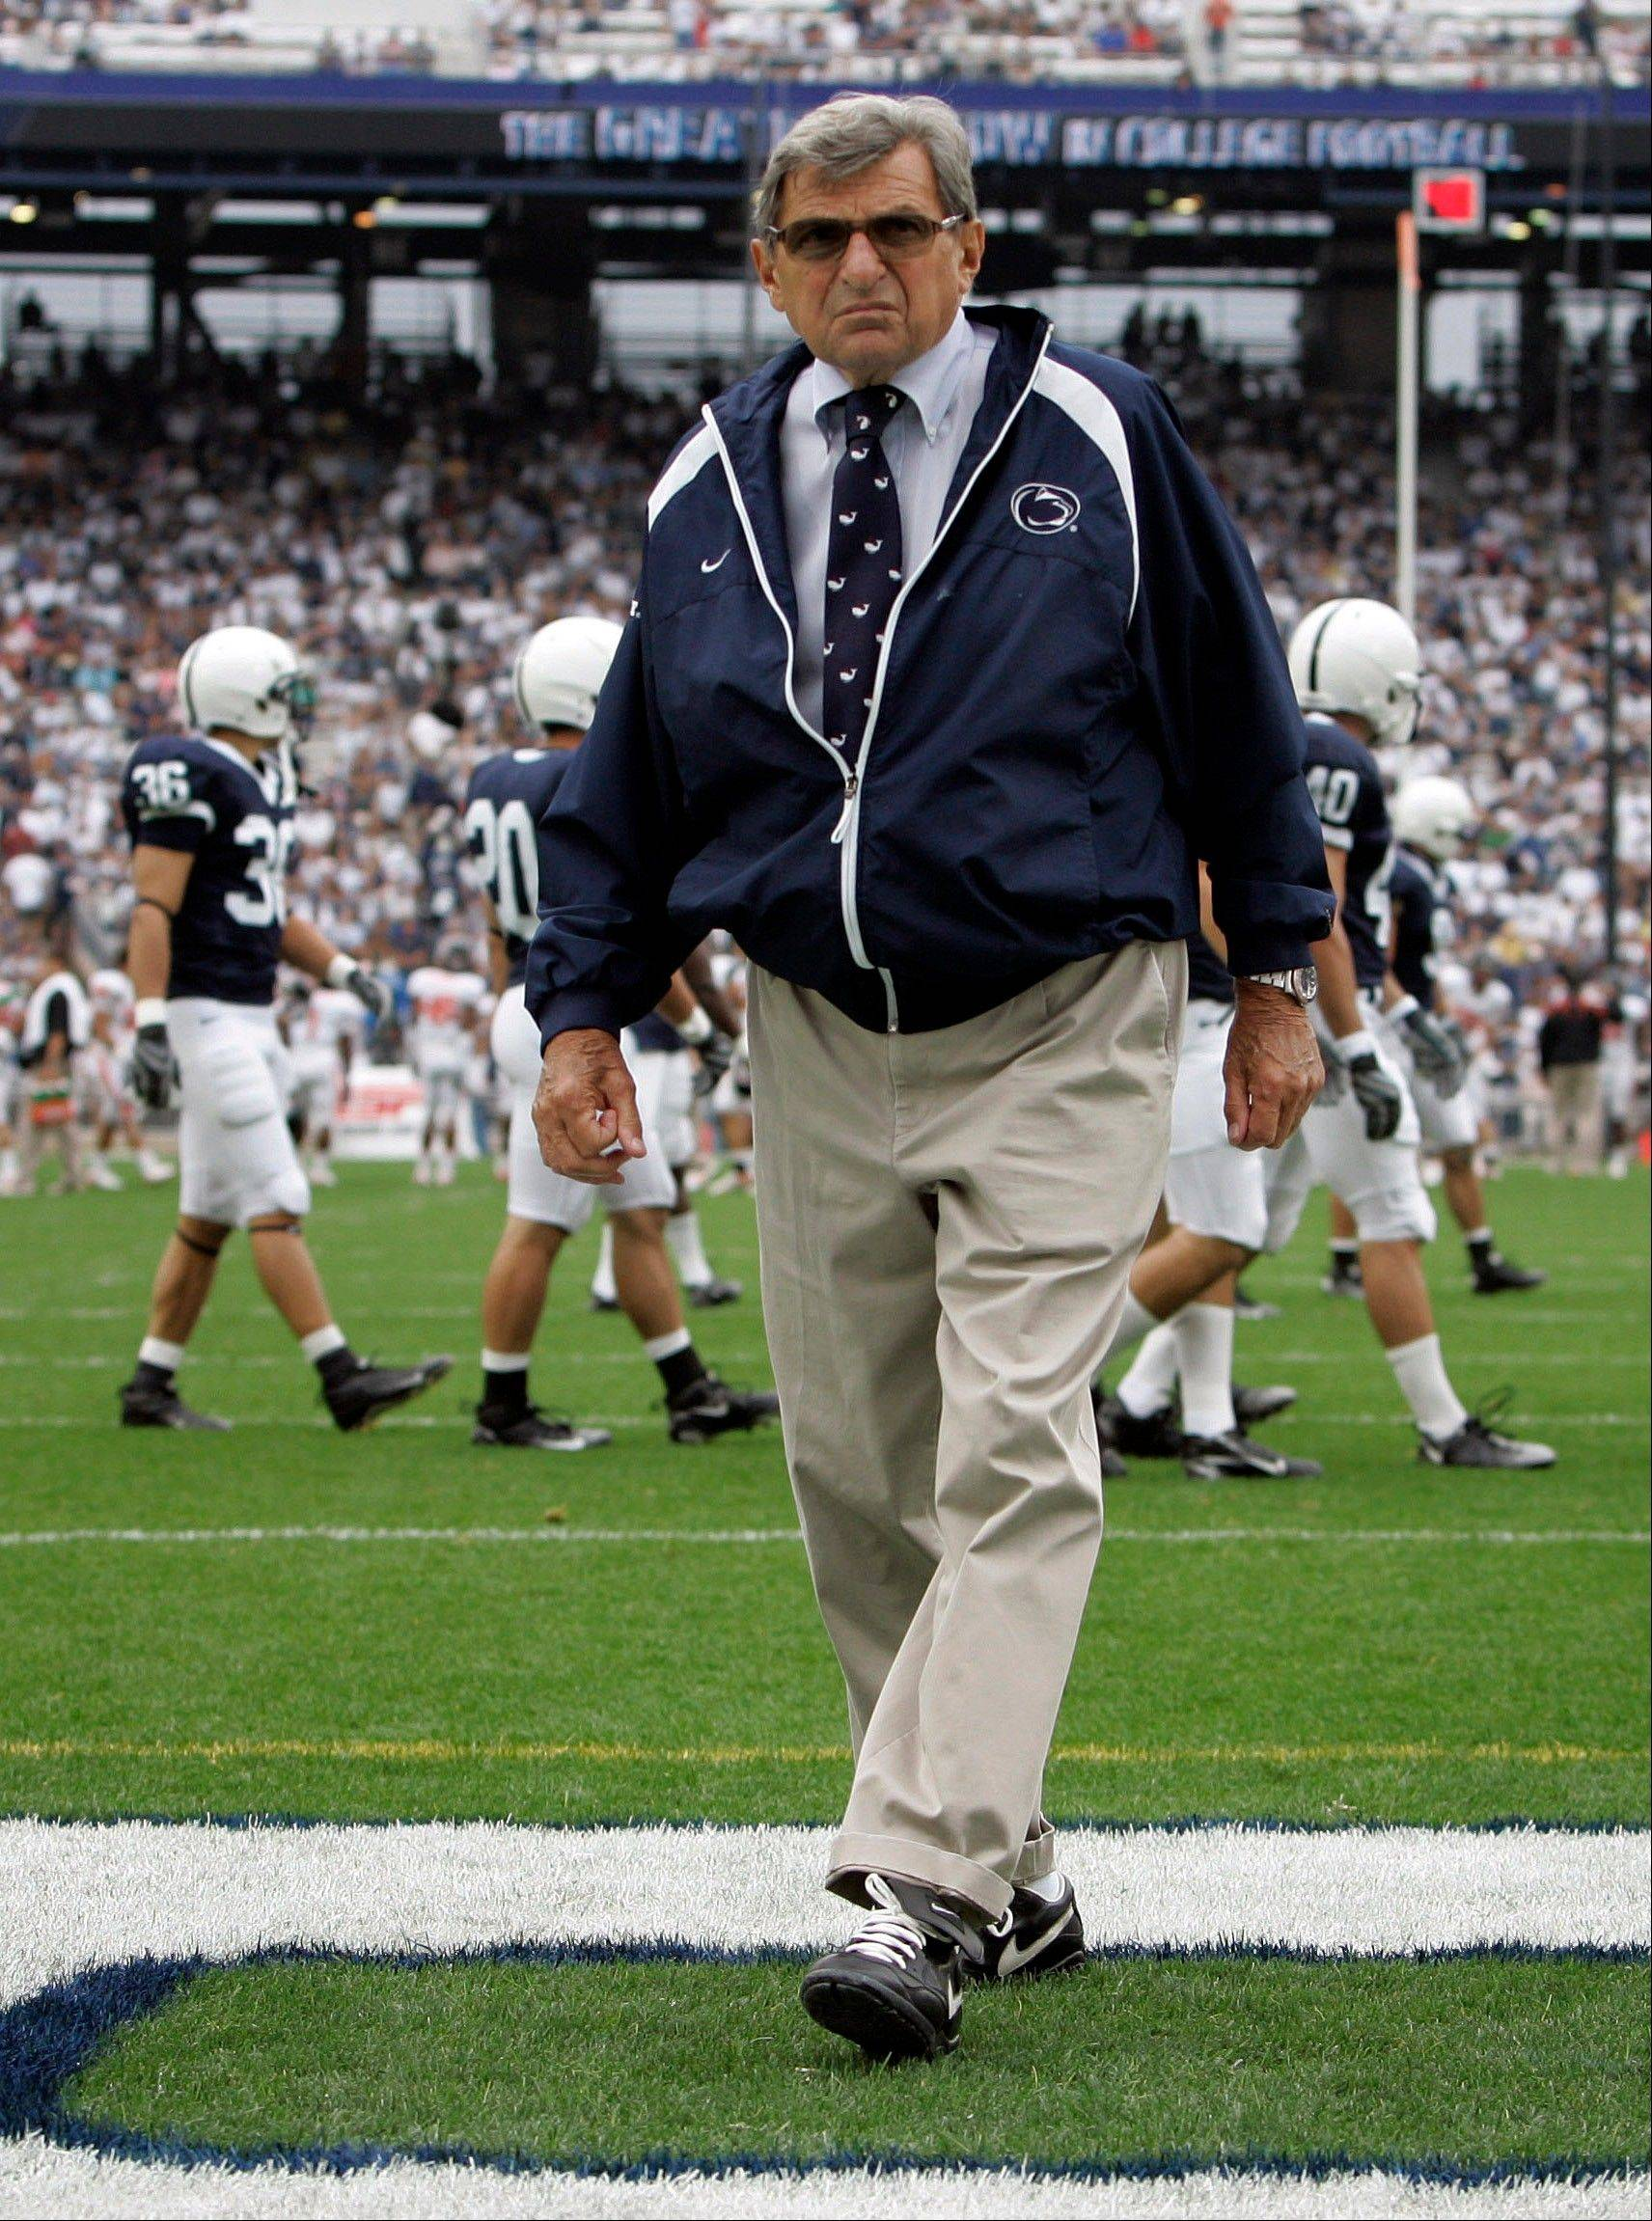 Former Penn State football coach Joe Paterno died of cancer in January at age 85, less than three months after being ousted by university trustees.